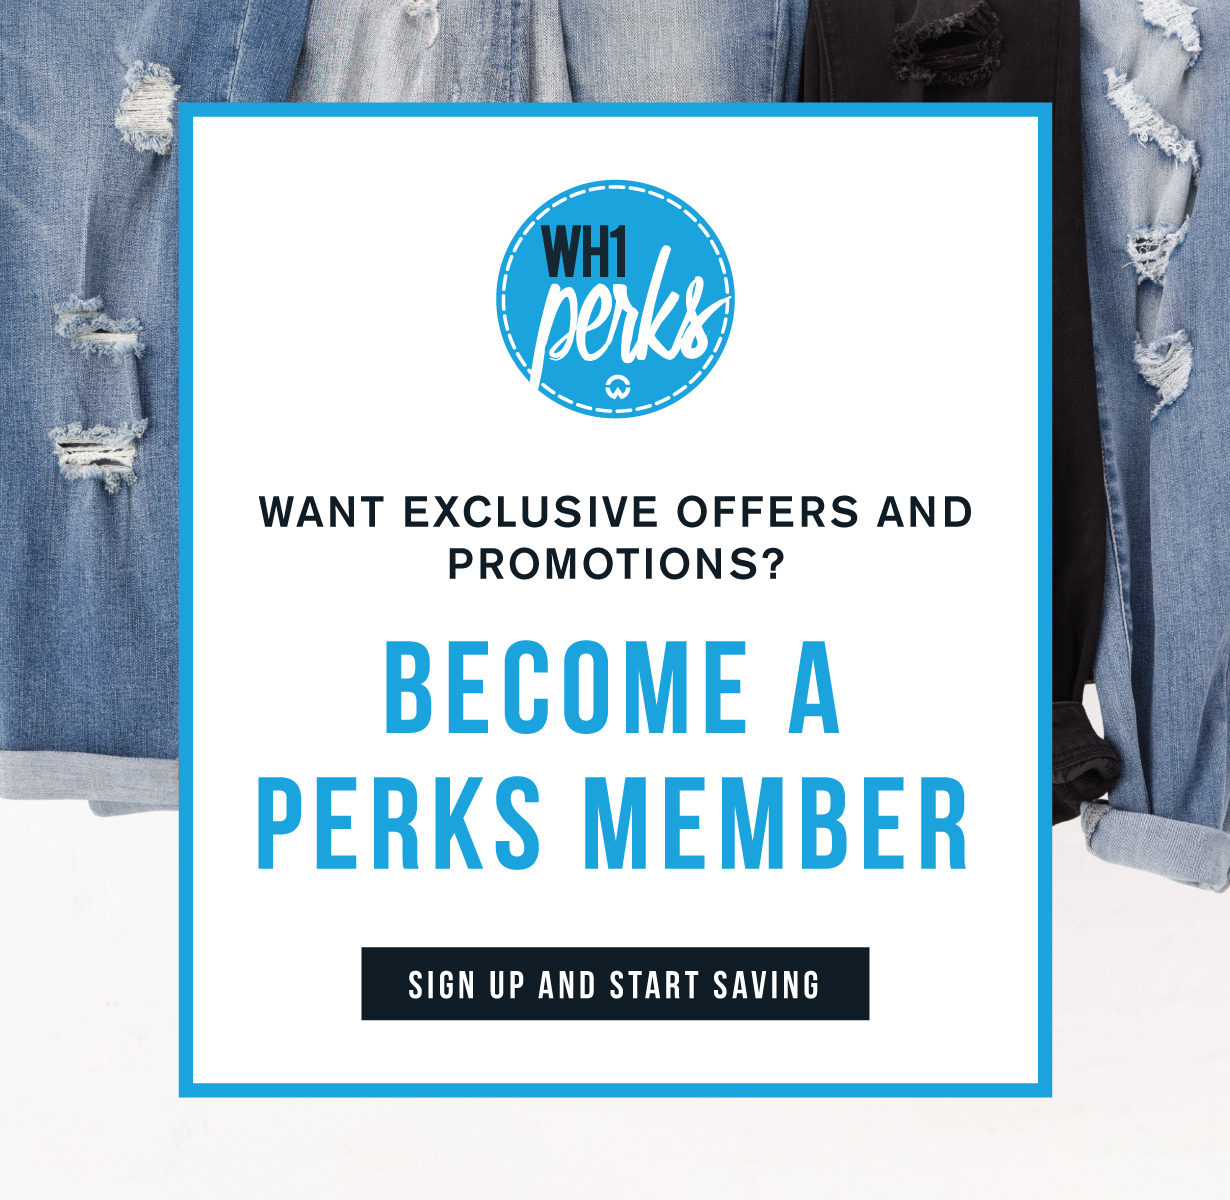 Want exclusive offers and promotions? Become a perks member. Sign up and start saving.